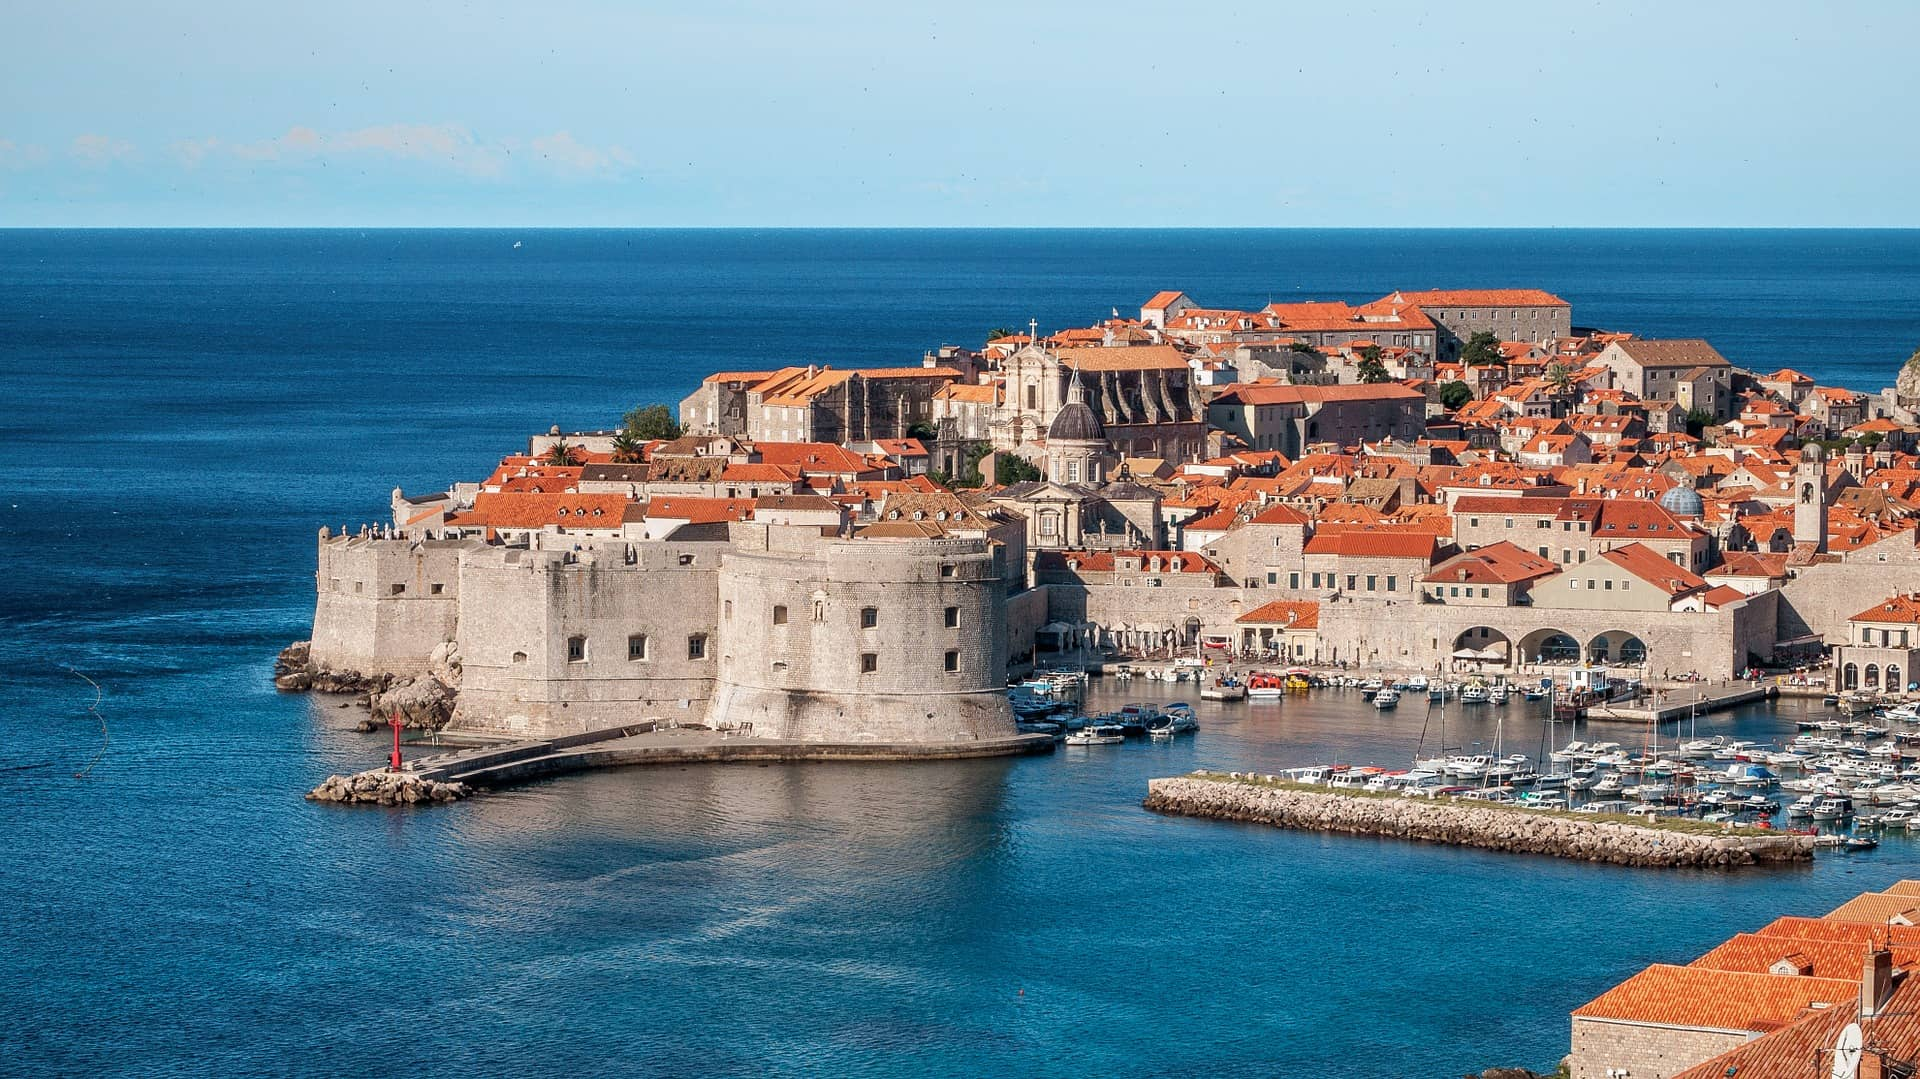 Where-to-stay-in-dubrovnik-old-town